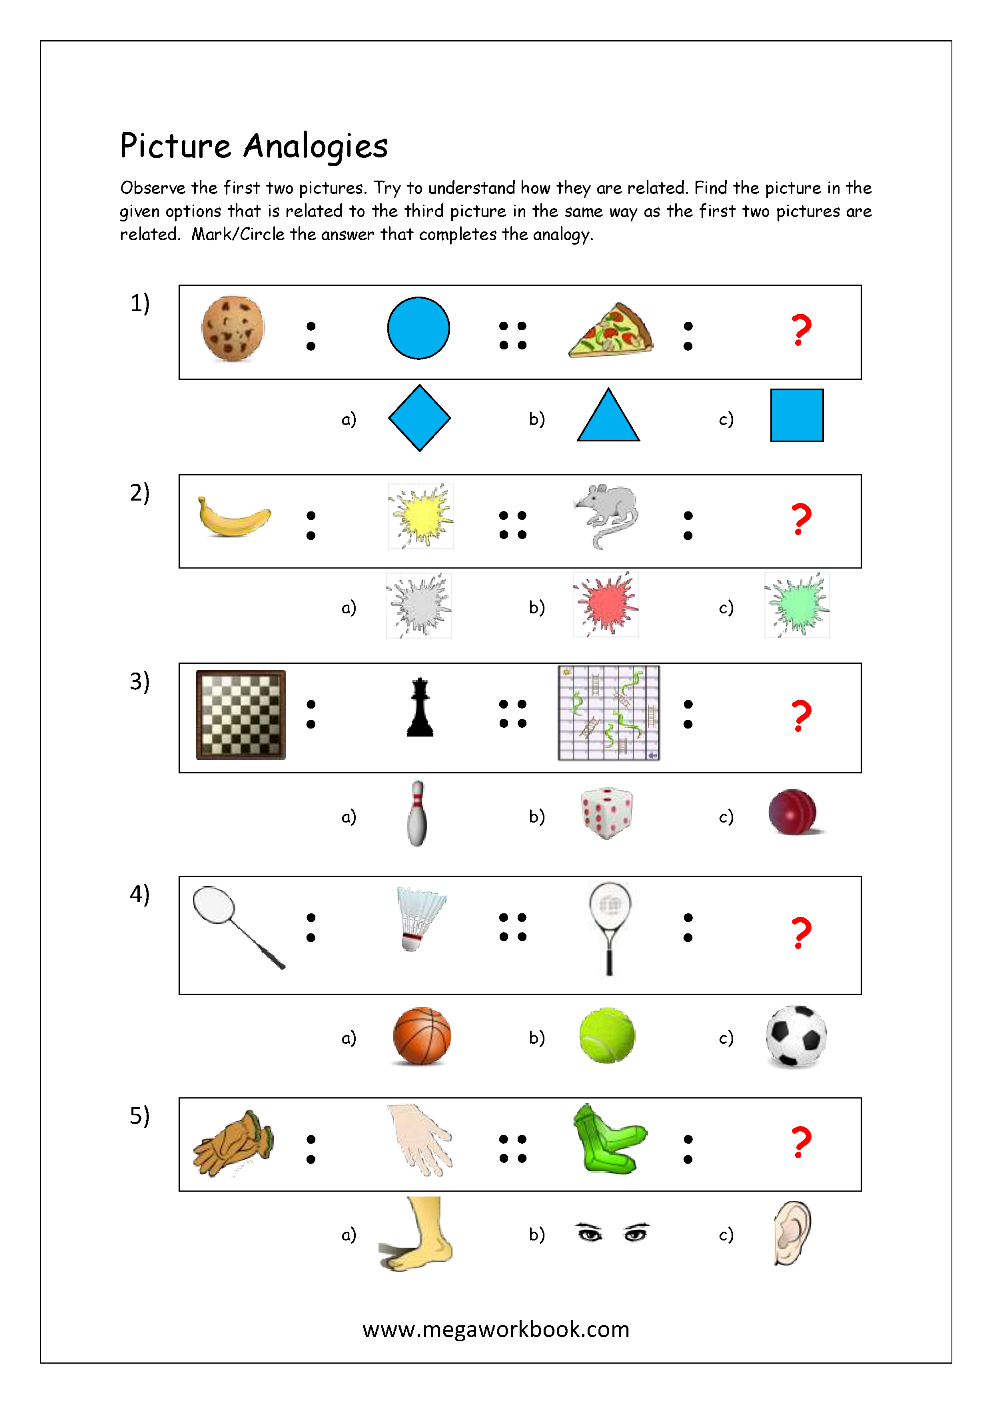 Free Printable Picture Analogy Worksheets - Logical